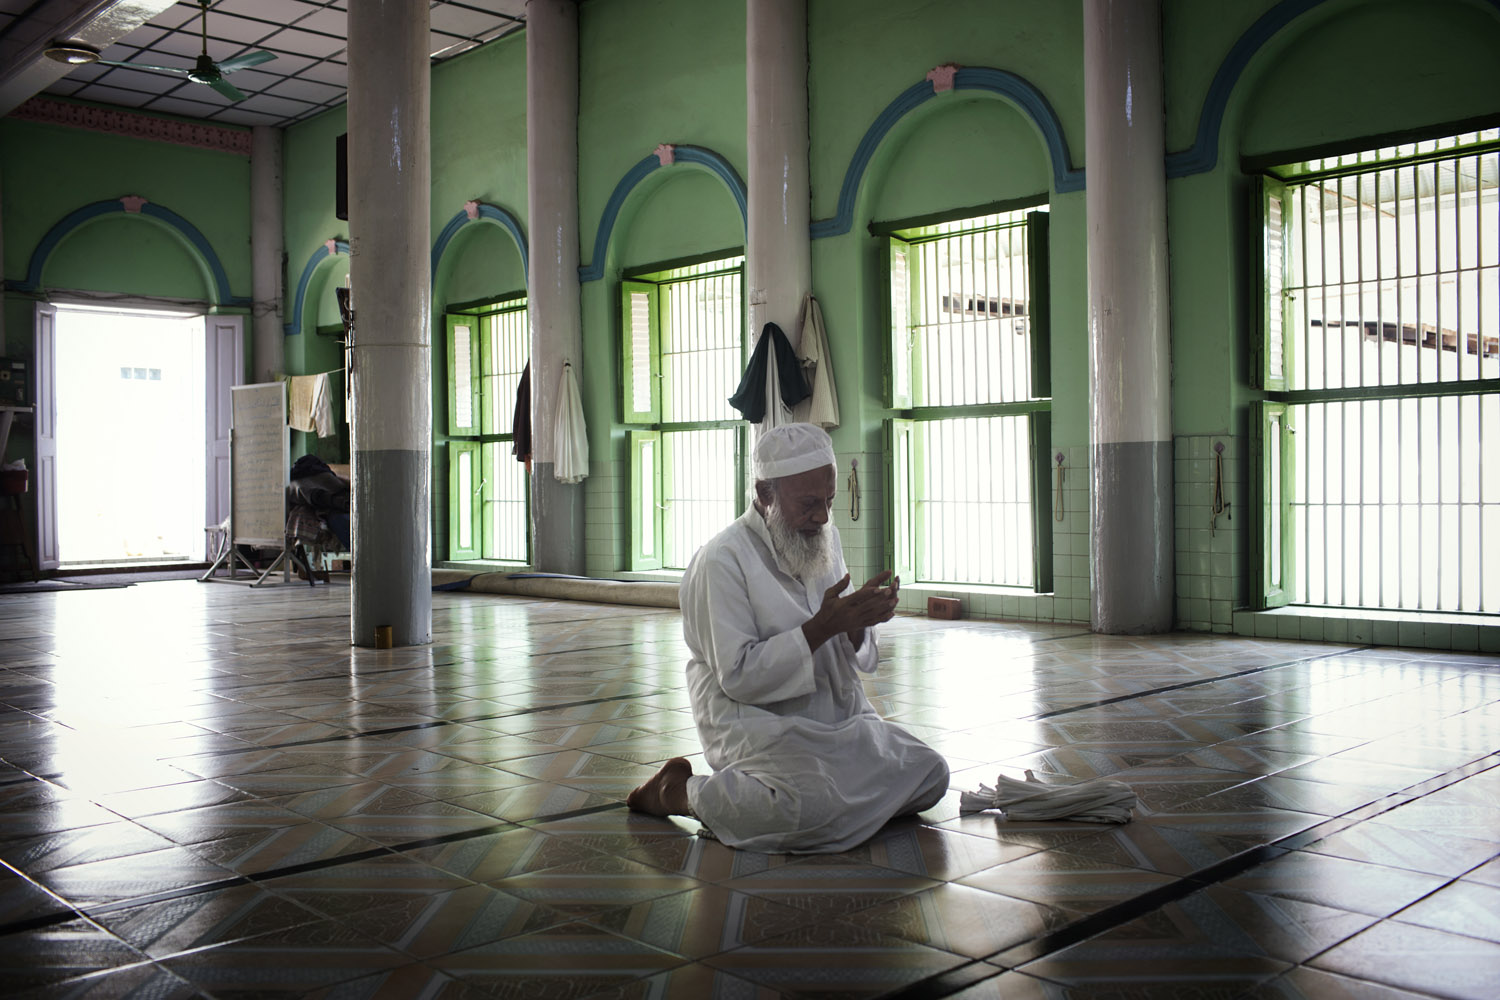 The Imam of Talanburee Mosque, which was attacked by Buddhist nationalists in 1997, prays in Mandalay, Burma.